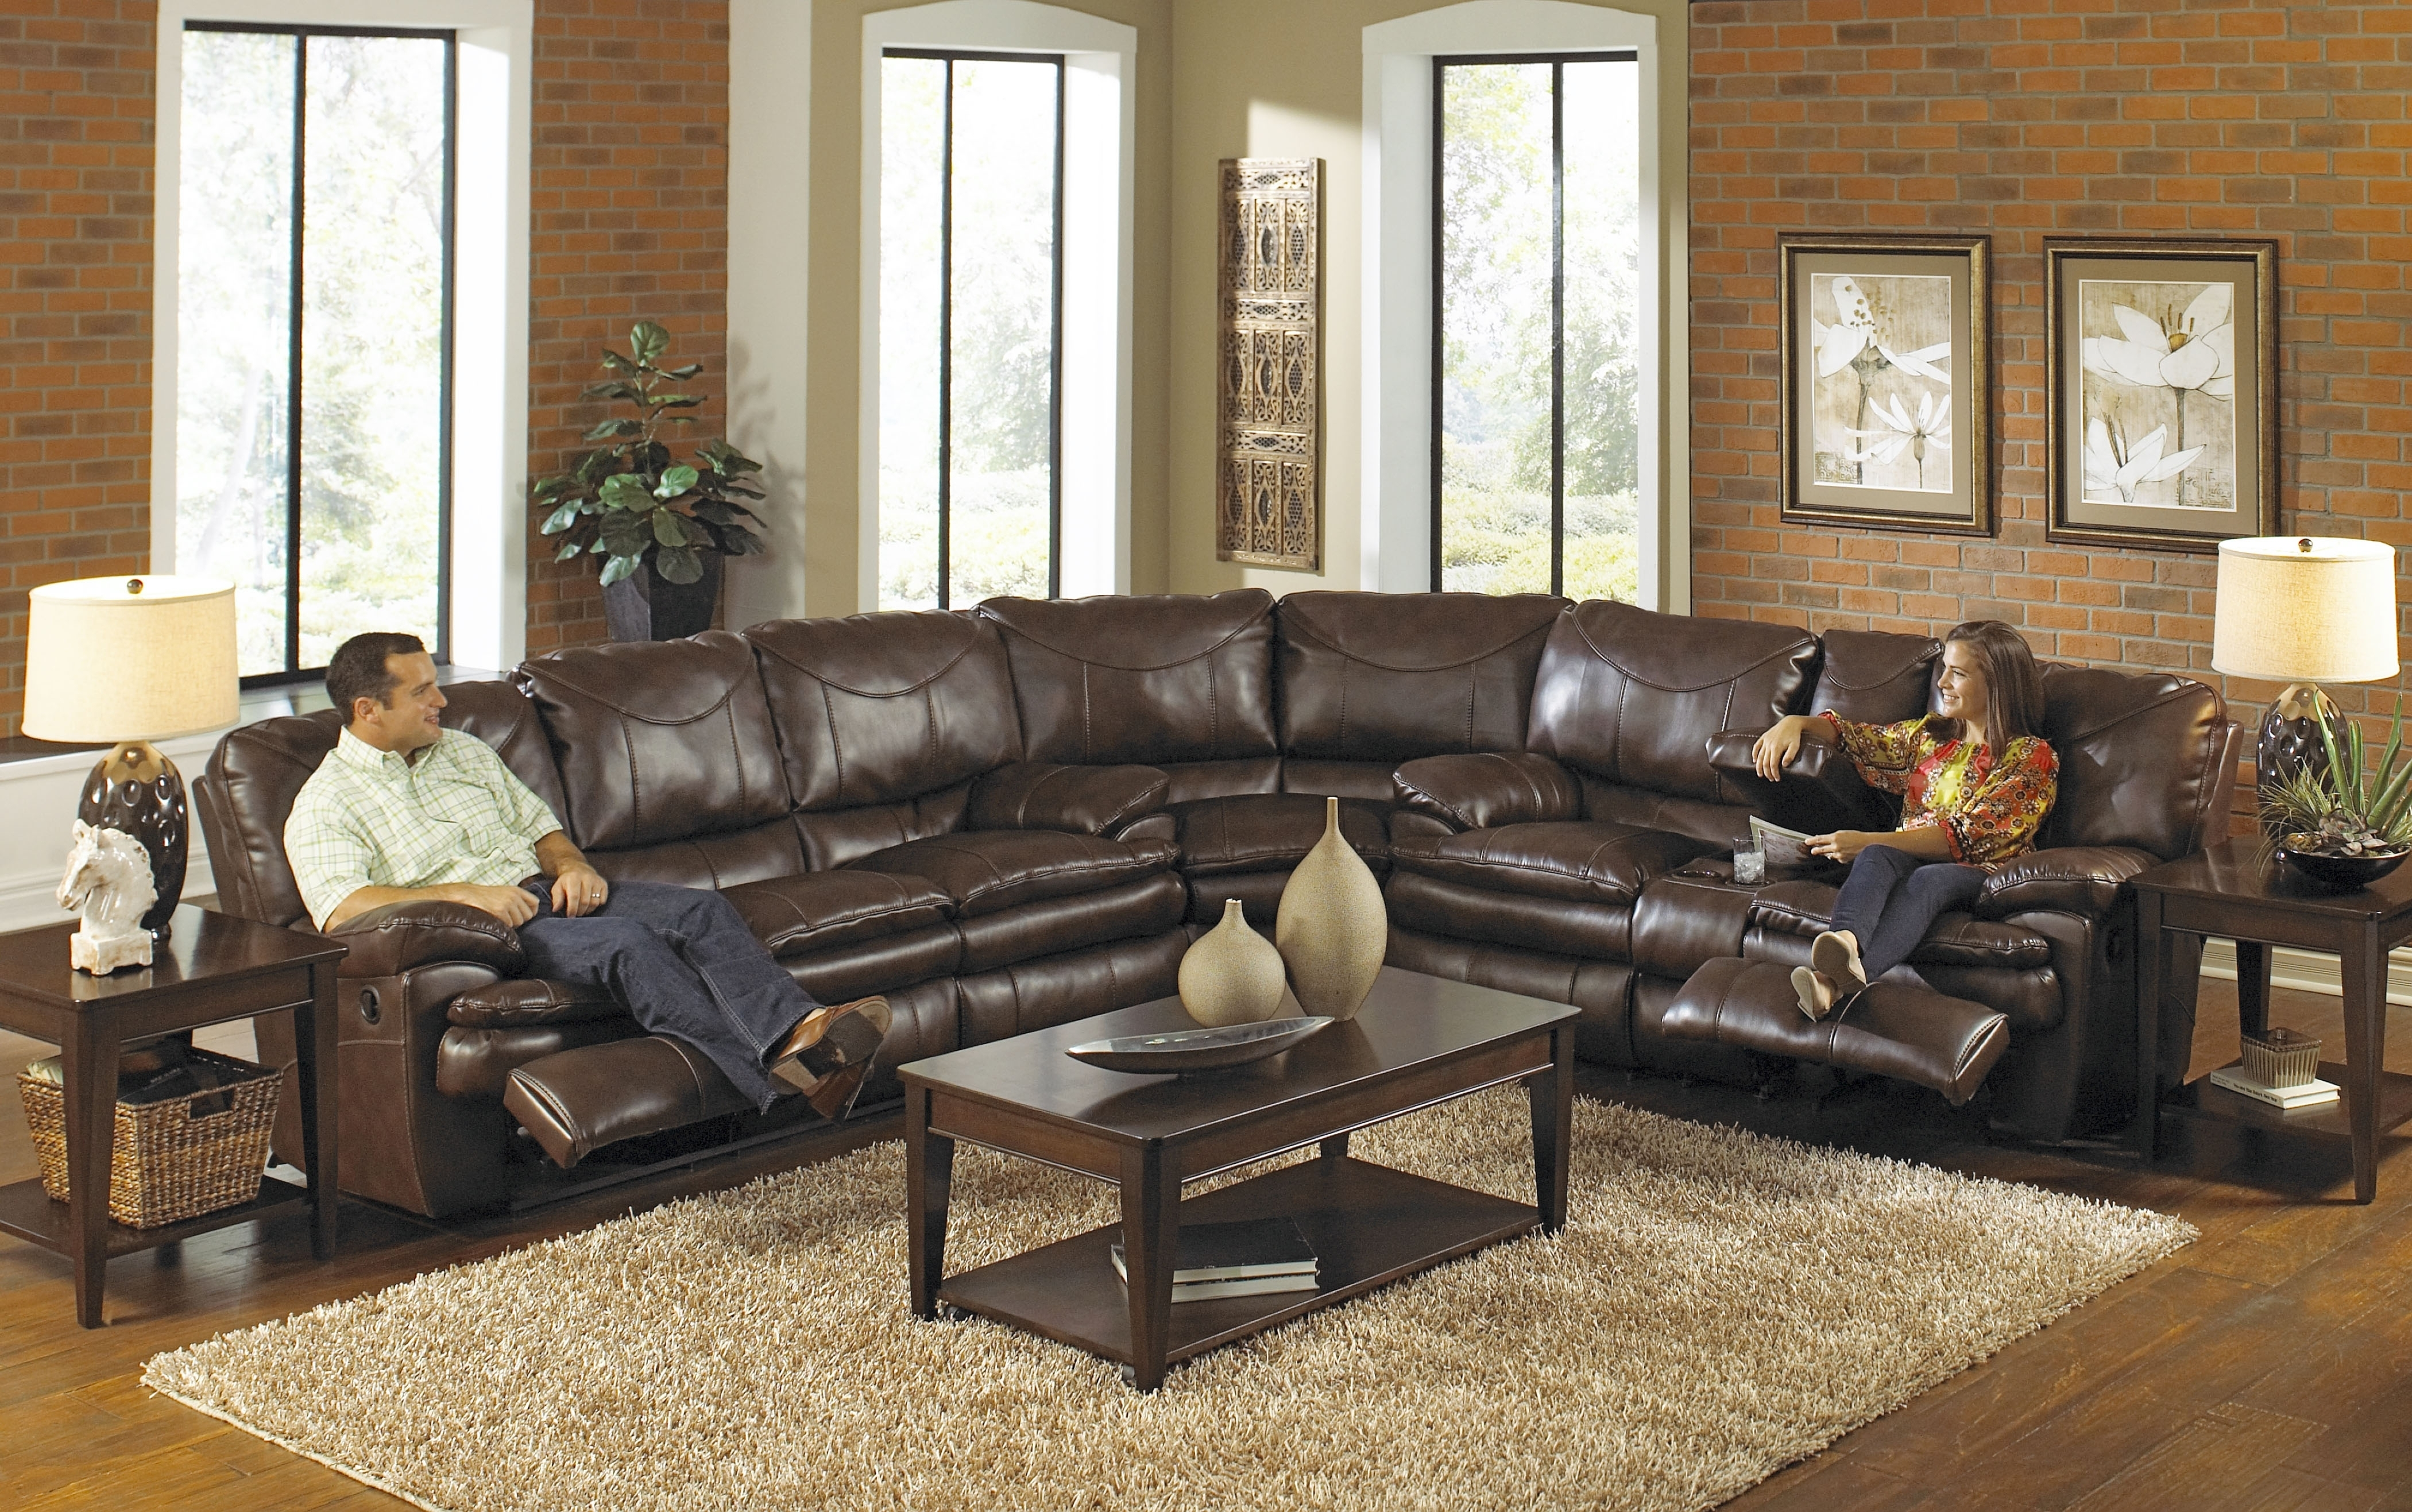 Elegant Reclining Sectional Sofa With Sleeper 88 In Sectional Sofas With Tampa Sectional Sofas (Photo 10 of 10)